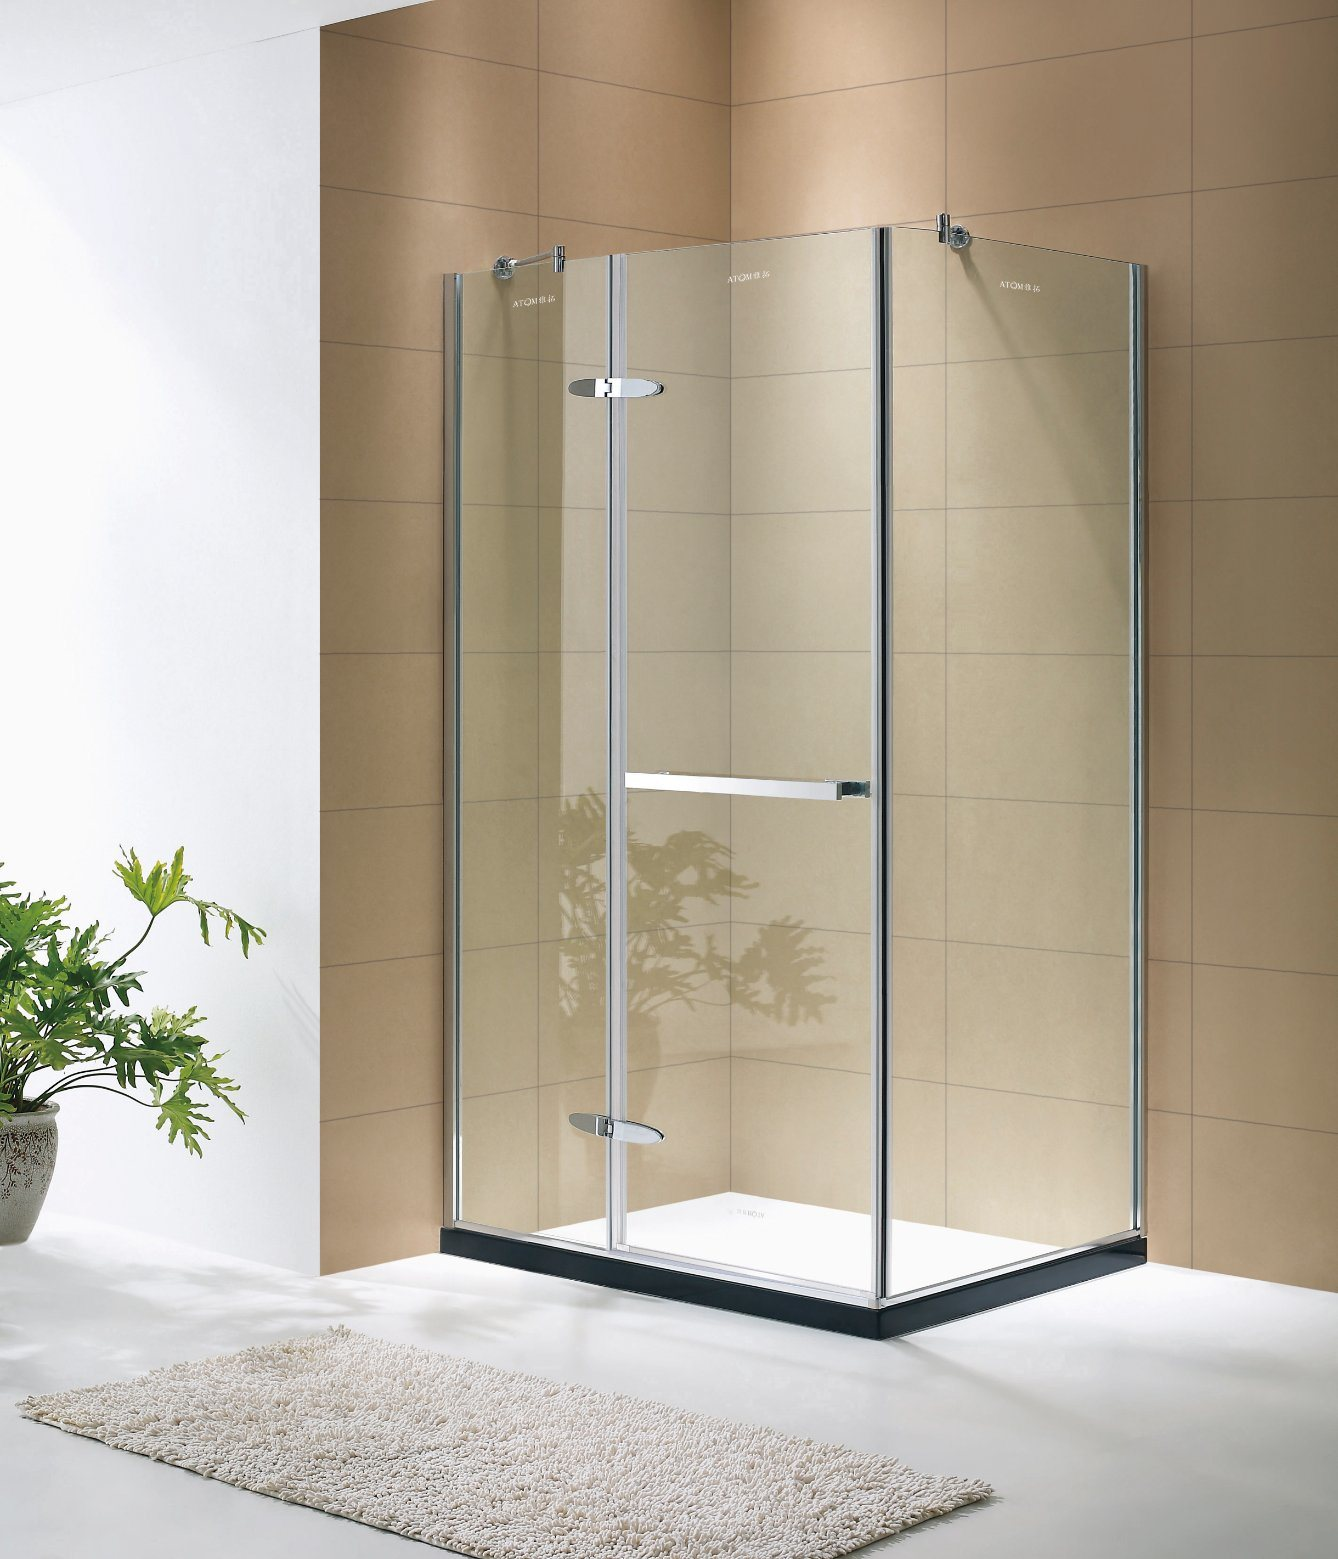 China Foshan Sanitary Ware 304 Stainless Steel Frameless Shower Enclosure/ Shower Cubicle   China Shower Room, Shower Door